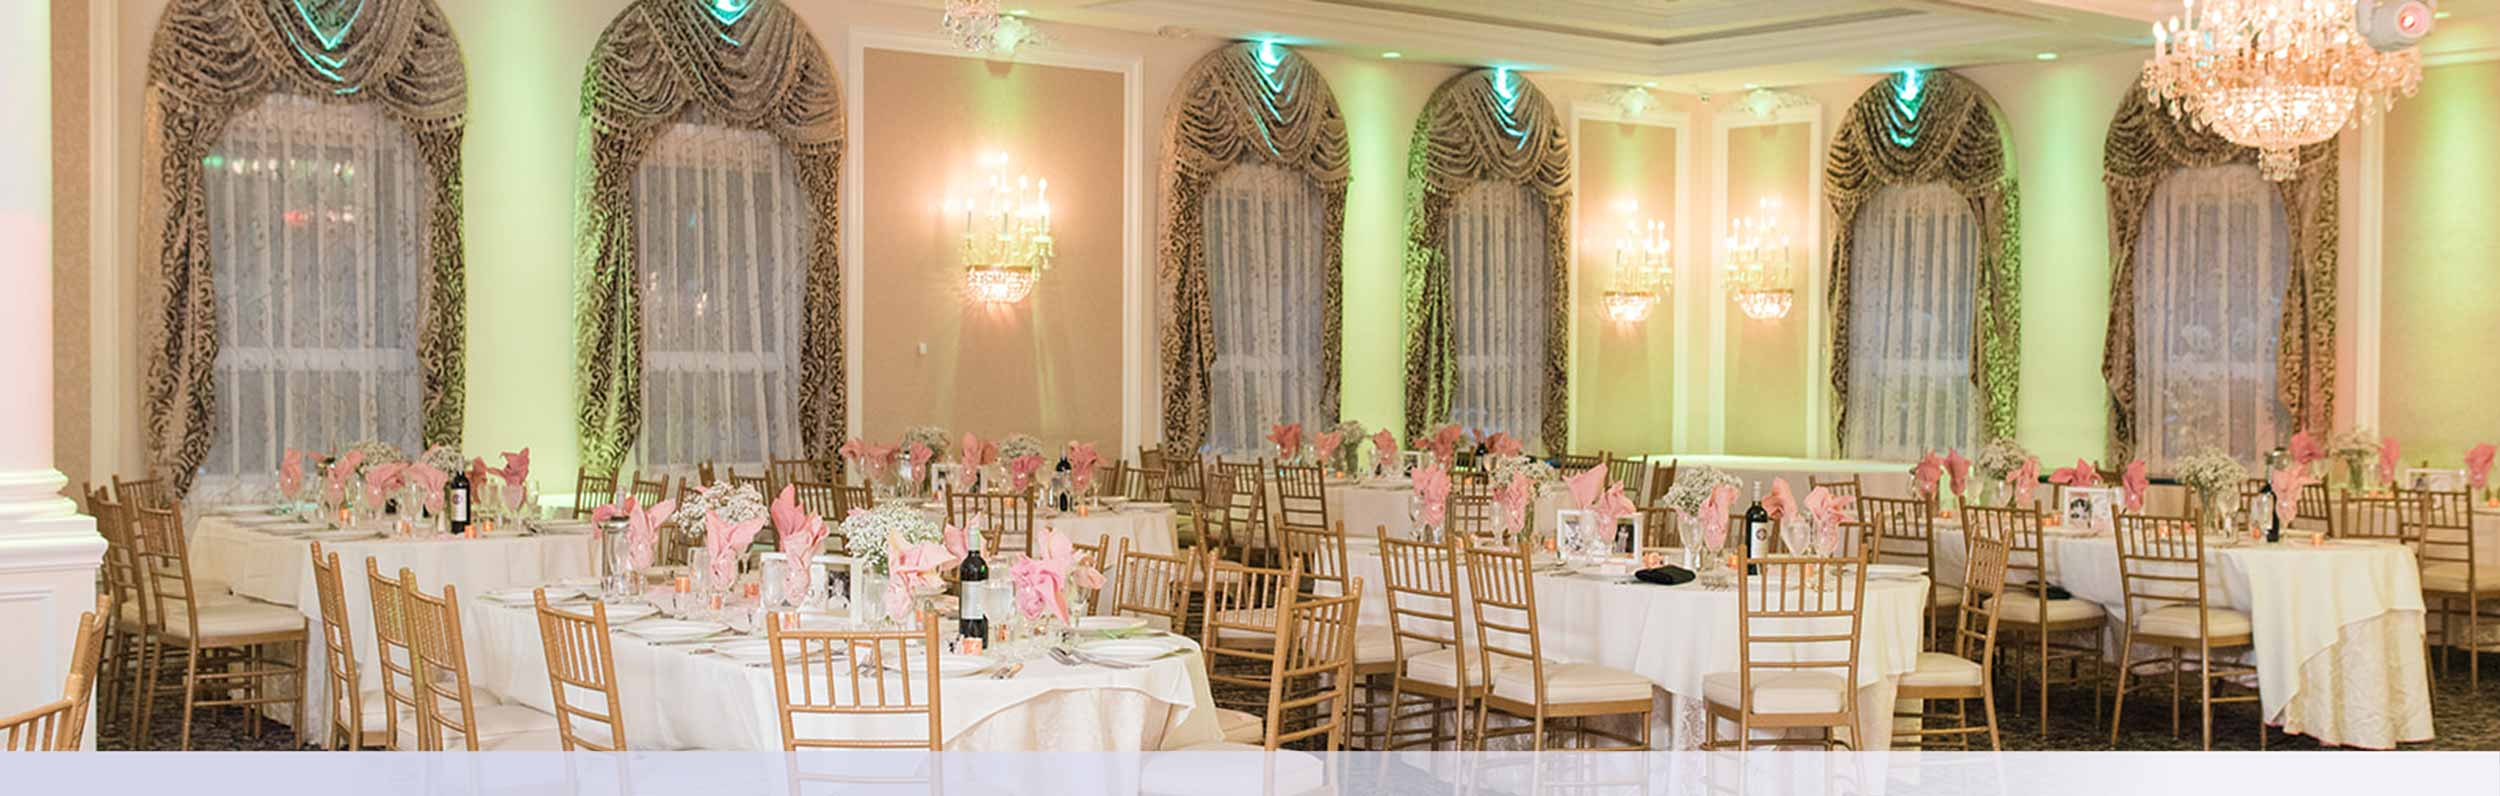 Romantic Affordable Stirling Nj Wedding Reception Venue